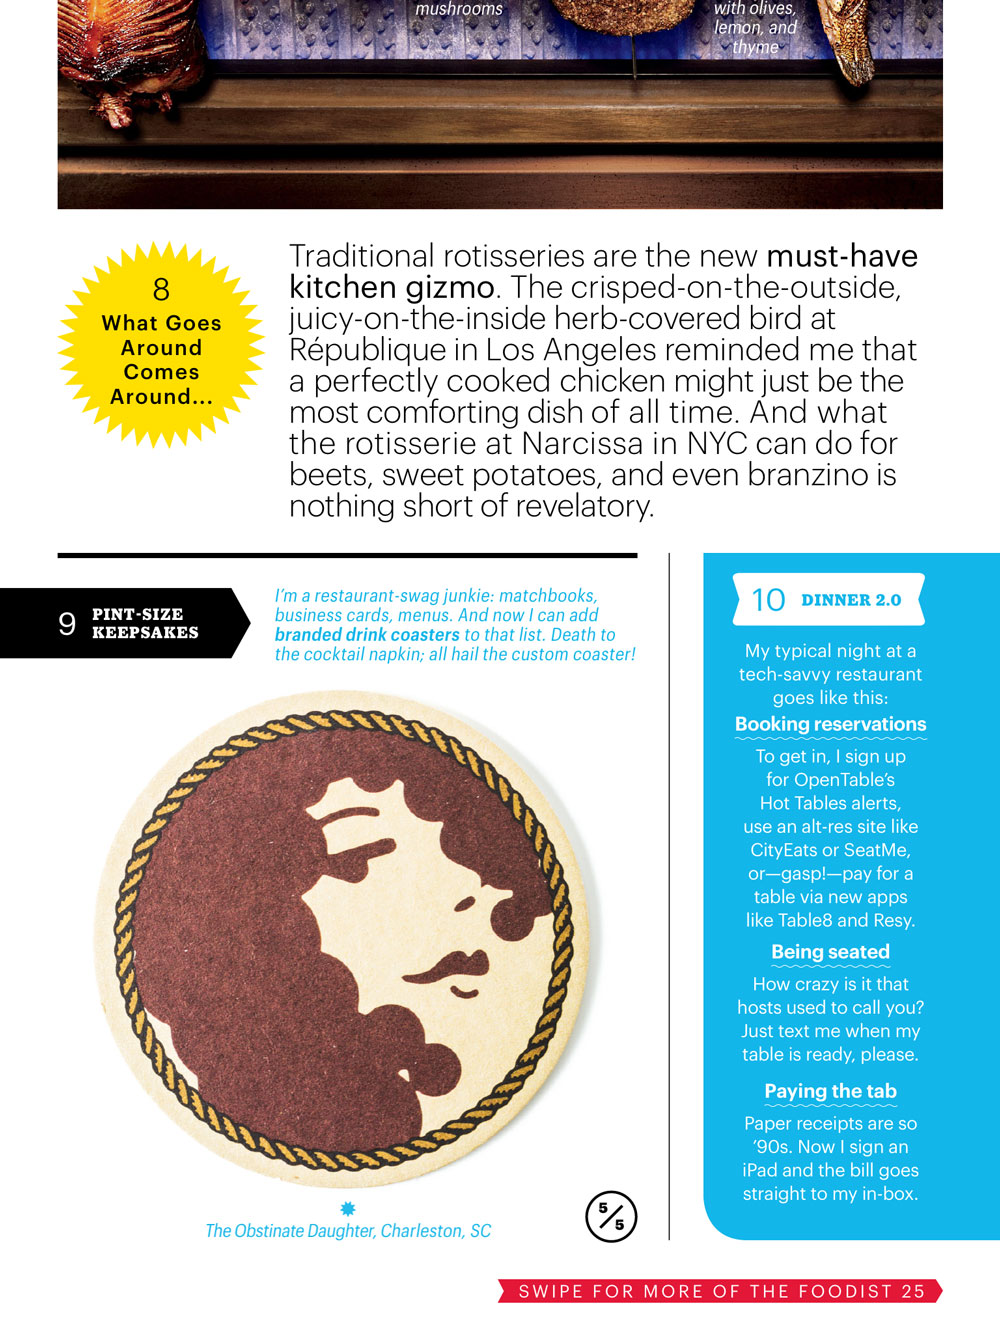 we are in Bon Appetit! | Gil Shuler Graphic Design